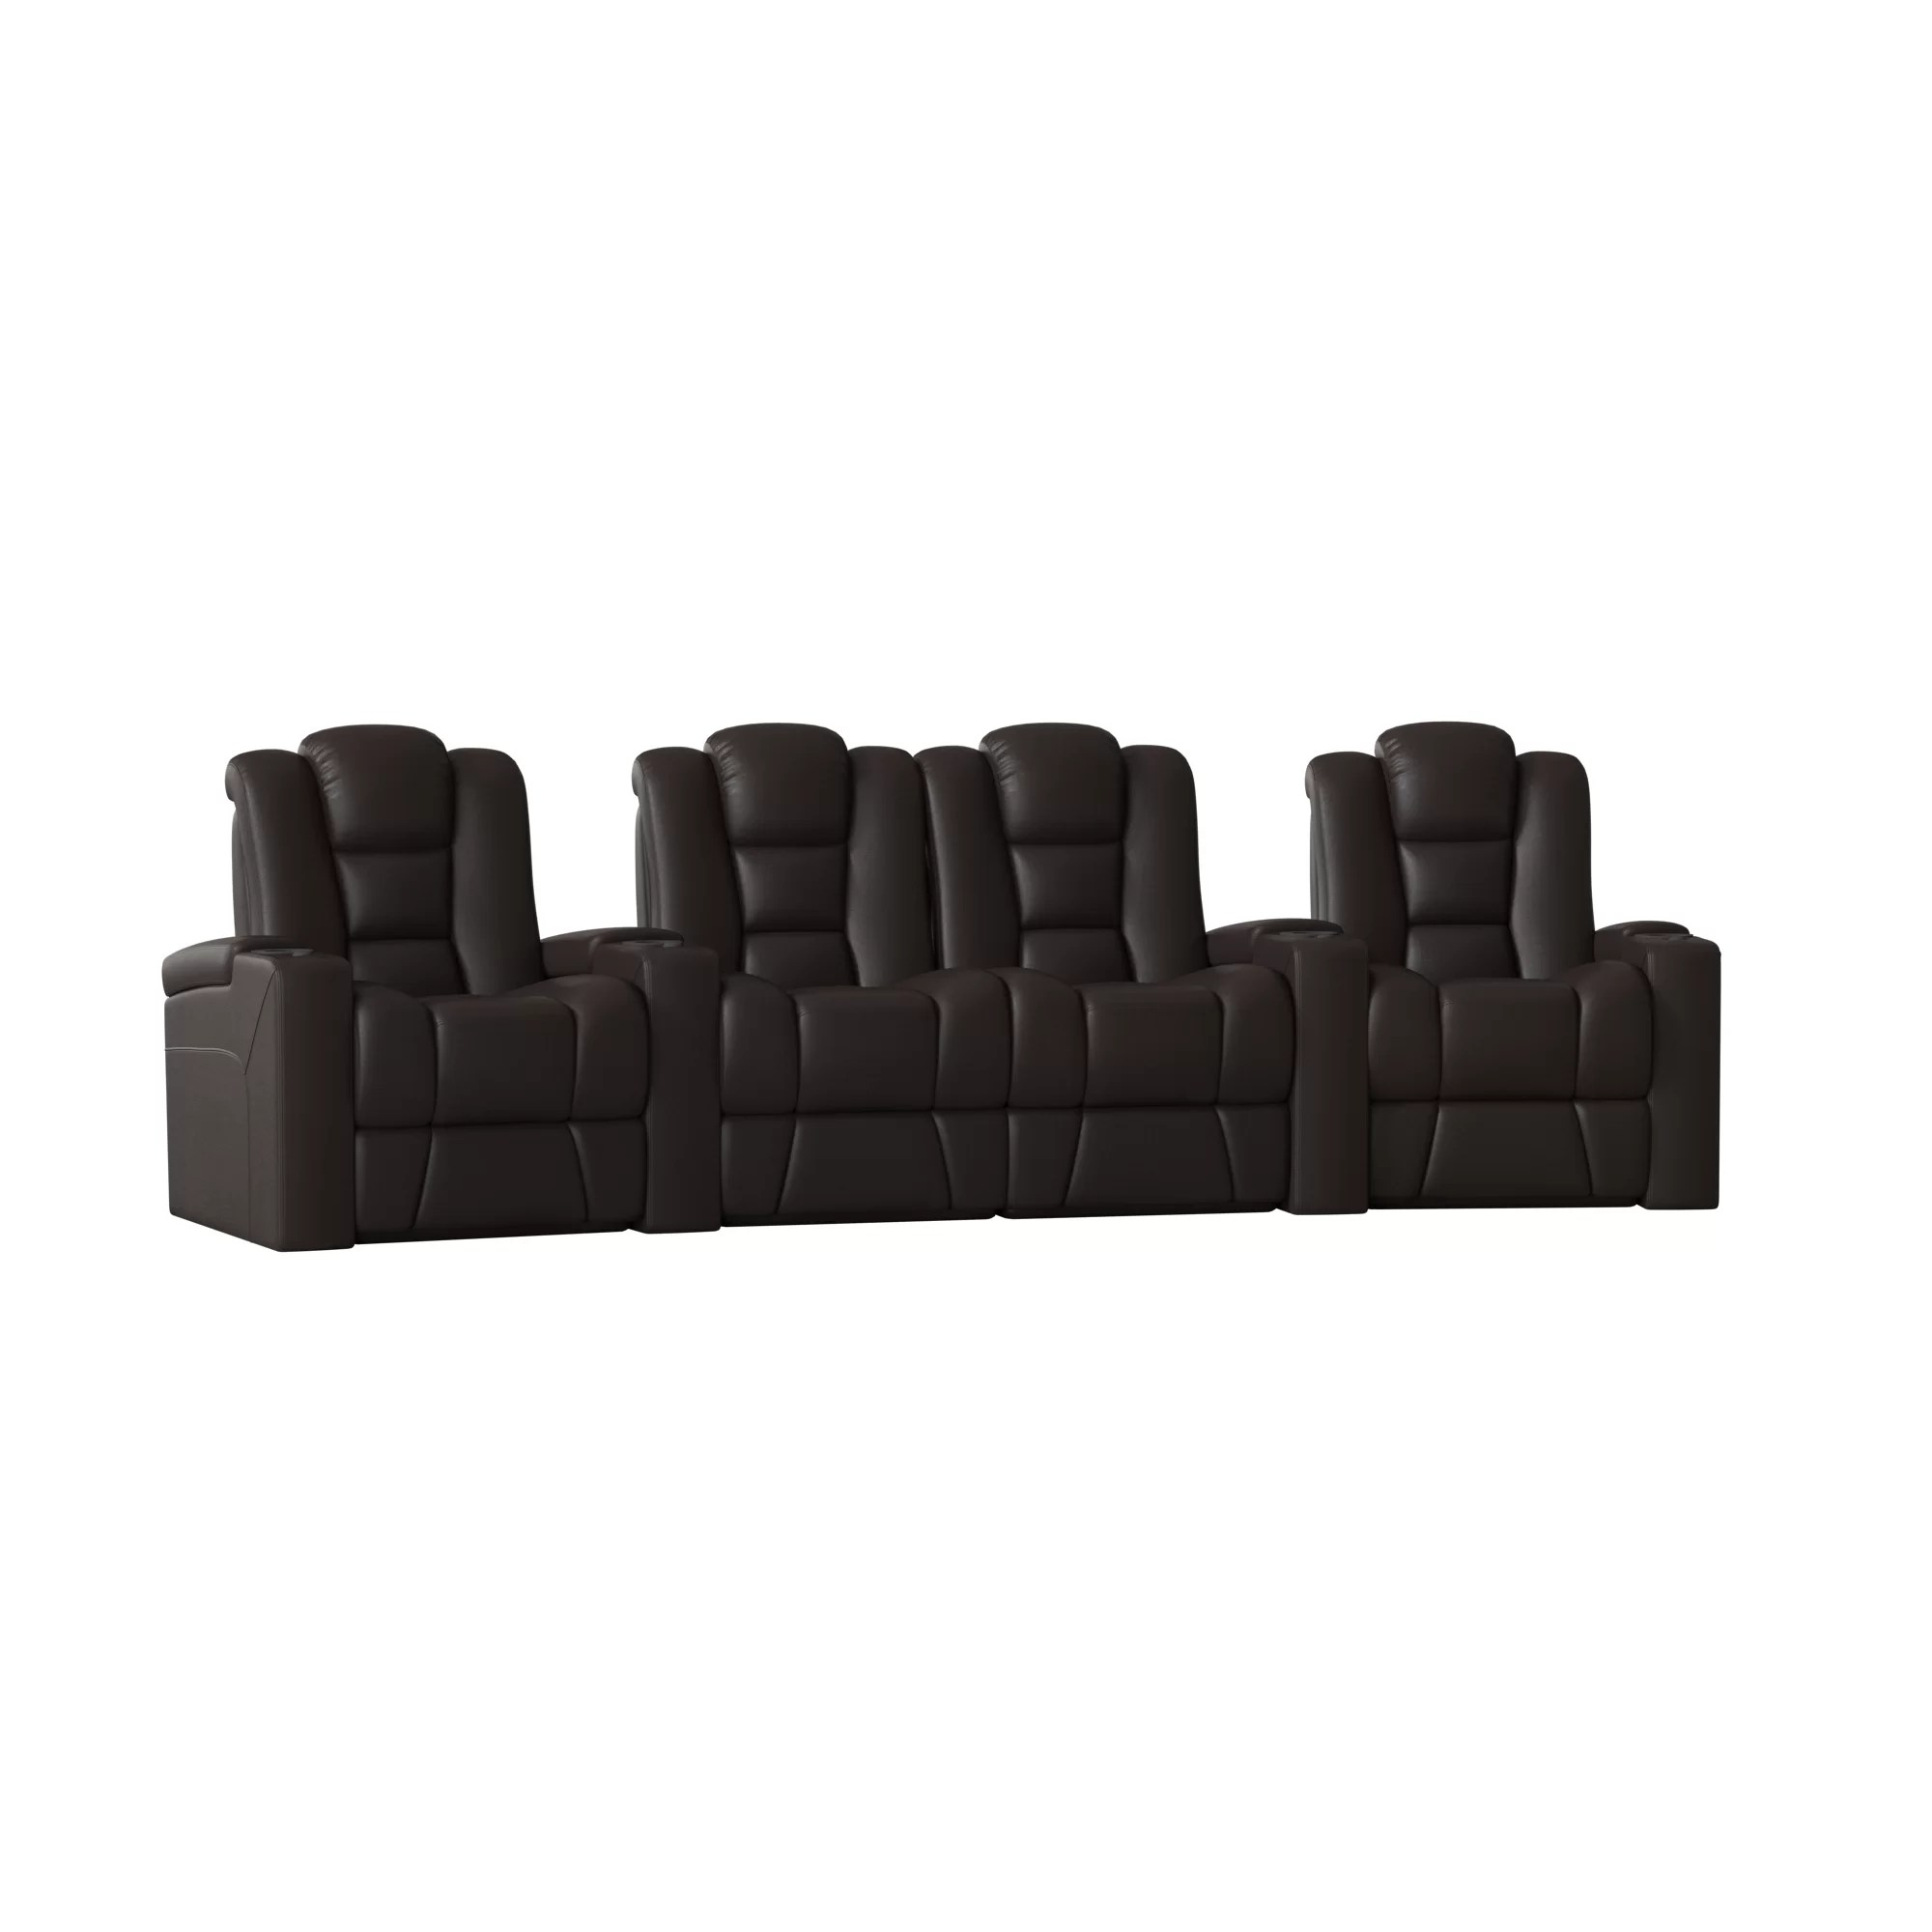 Contemporary Seating Contemporary Home Theater Row Curved Seating Row Of 4